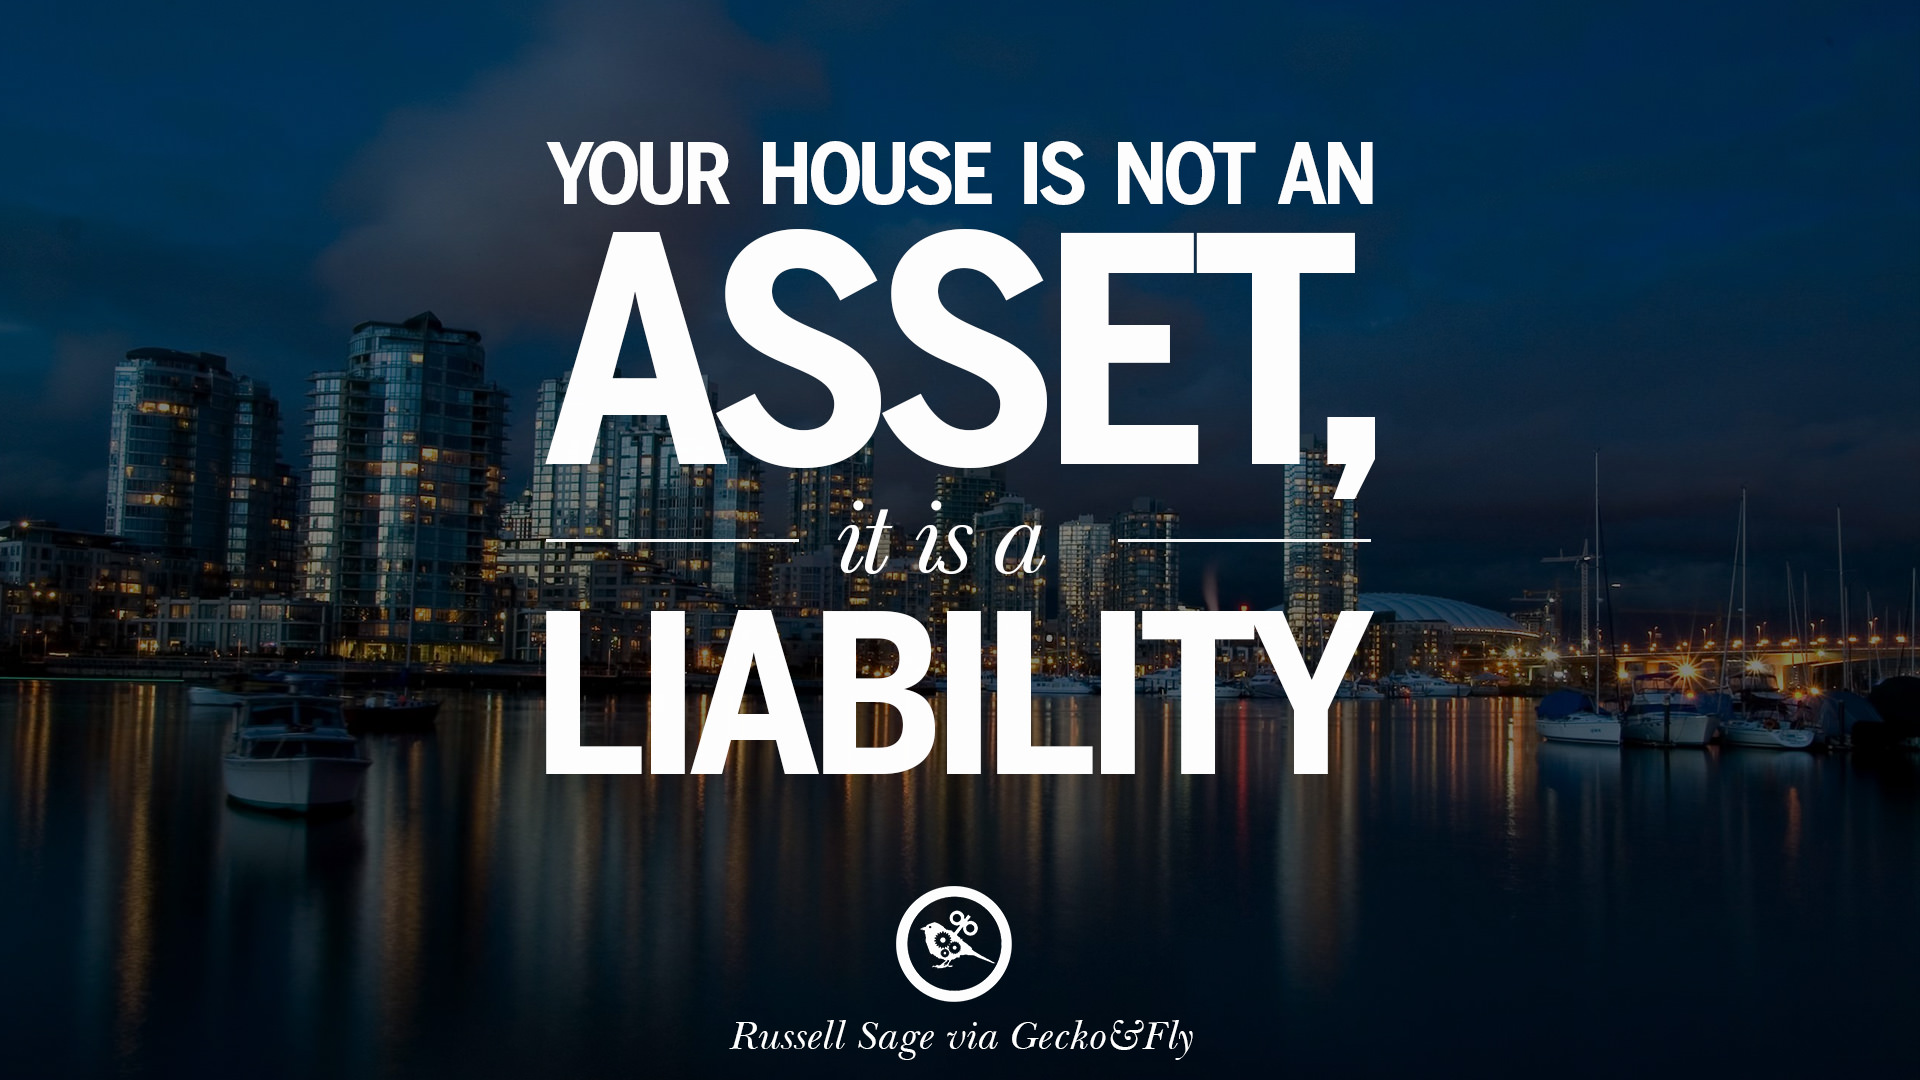 property-investment-investing-quotes-06.jpg